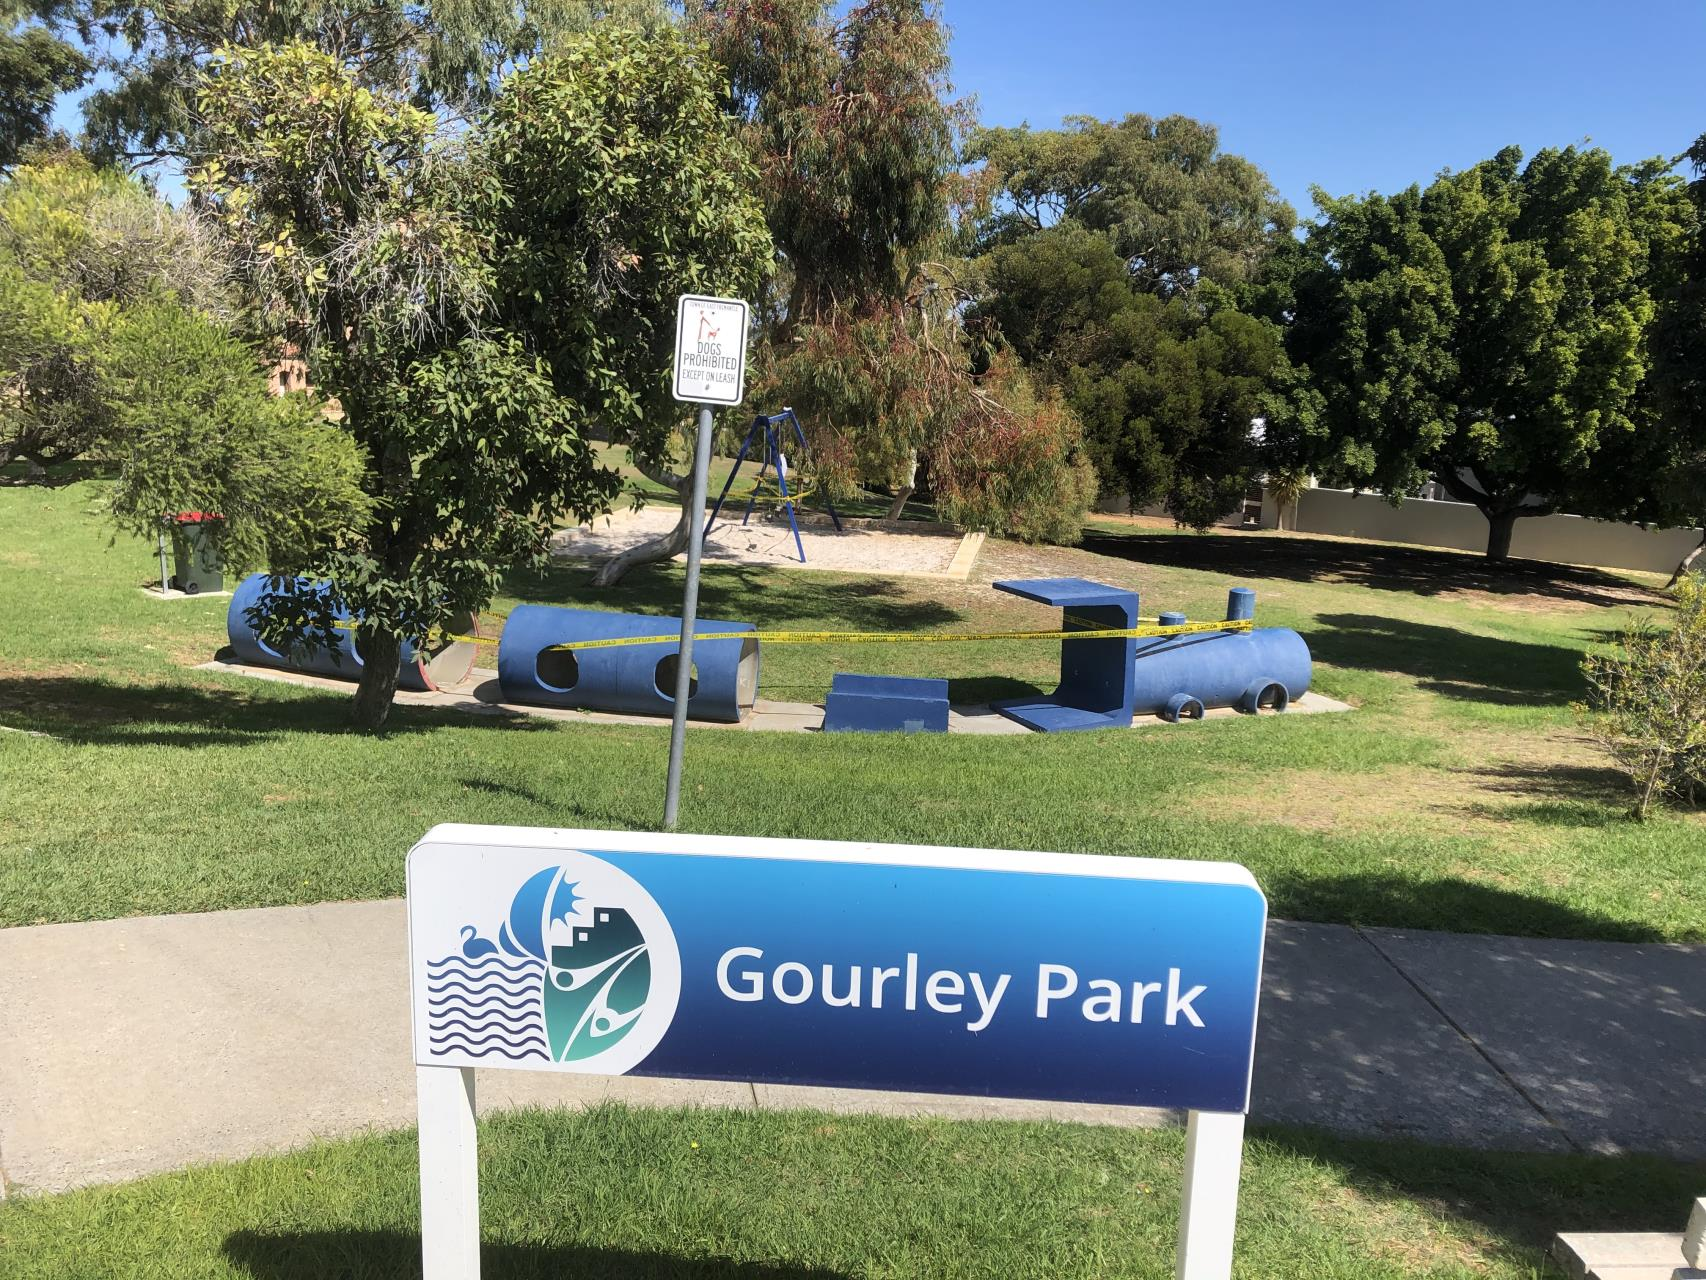 Playgrounds and Clubs Close, BBQs and Water Fountains Turned Off as